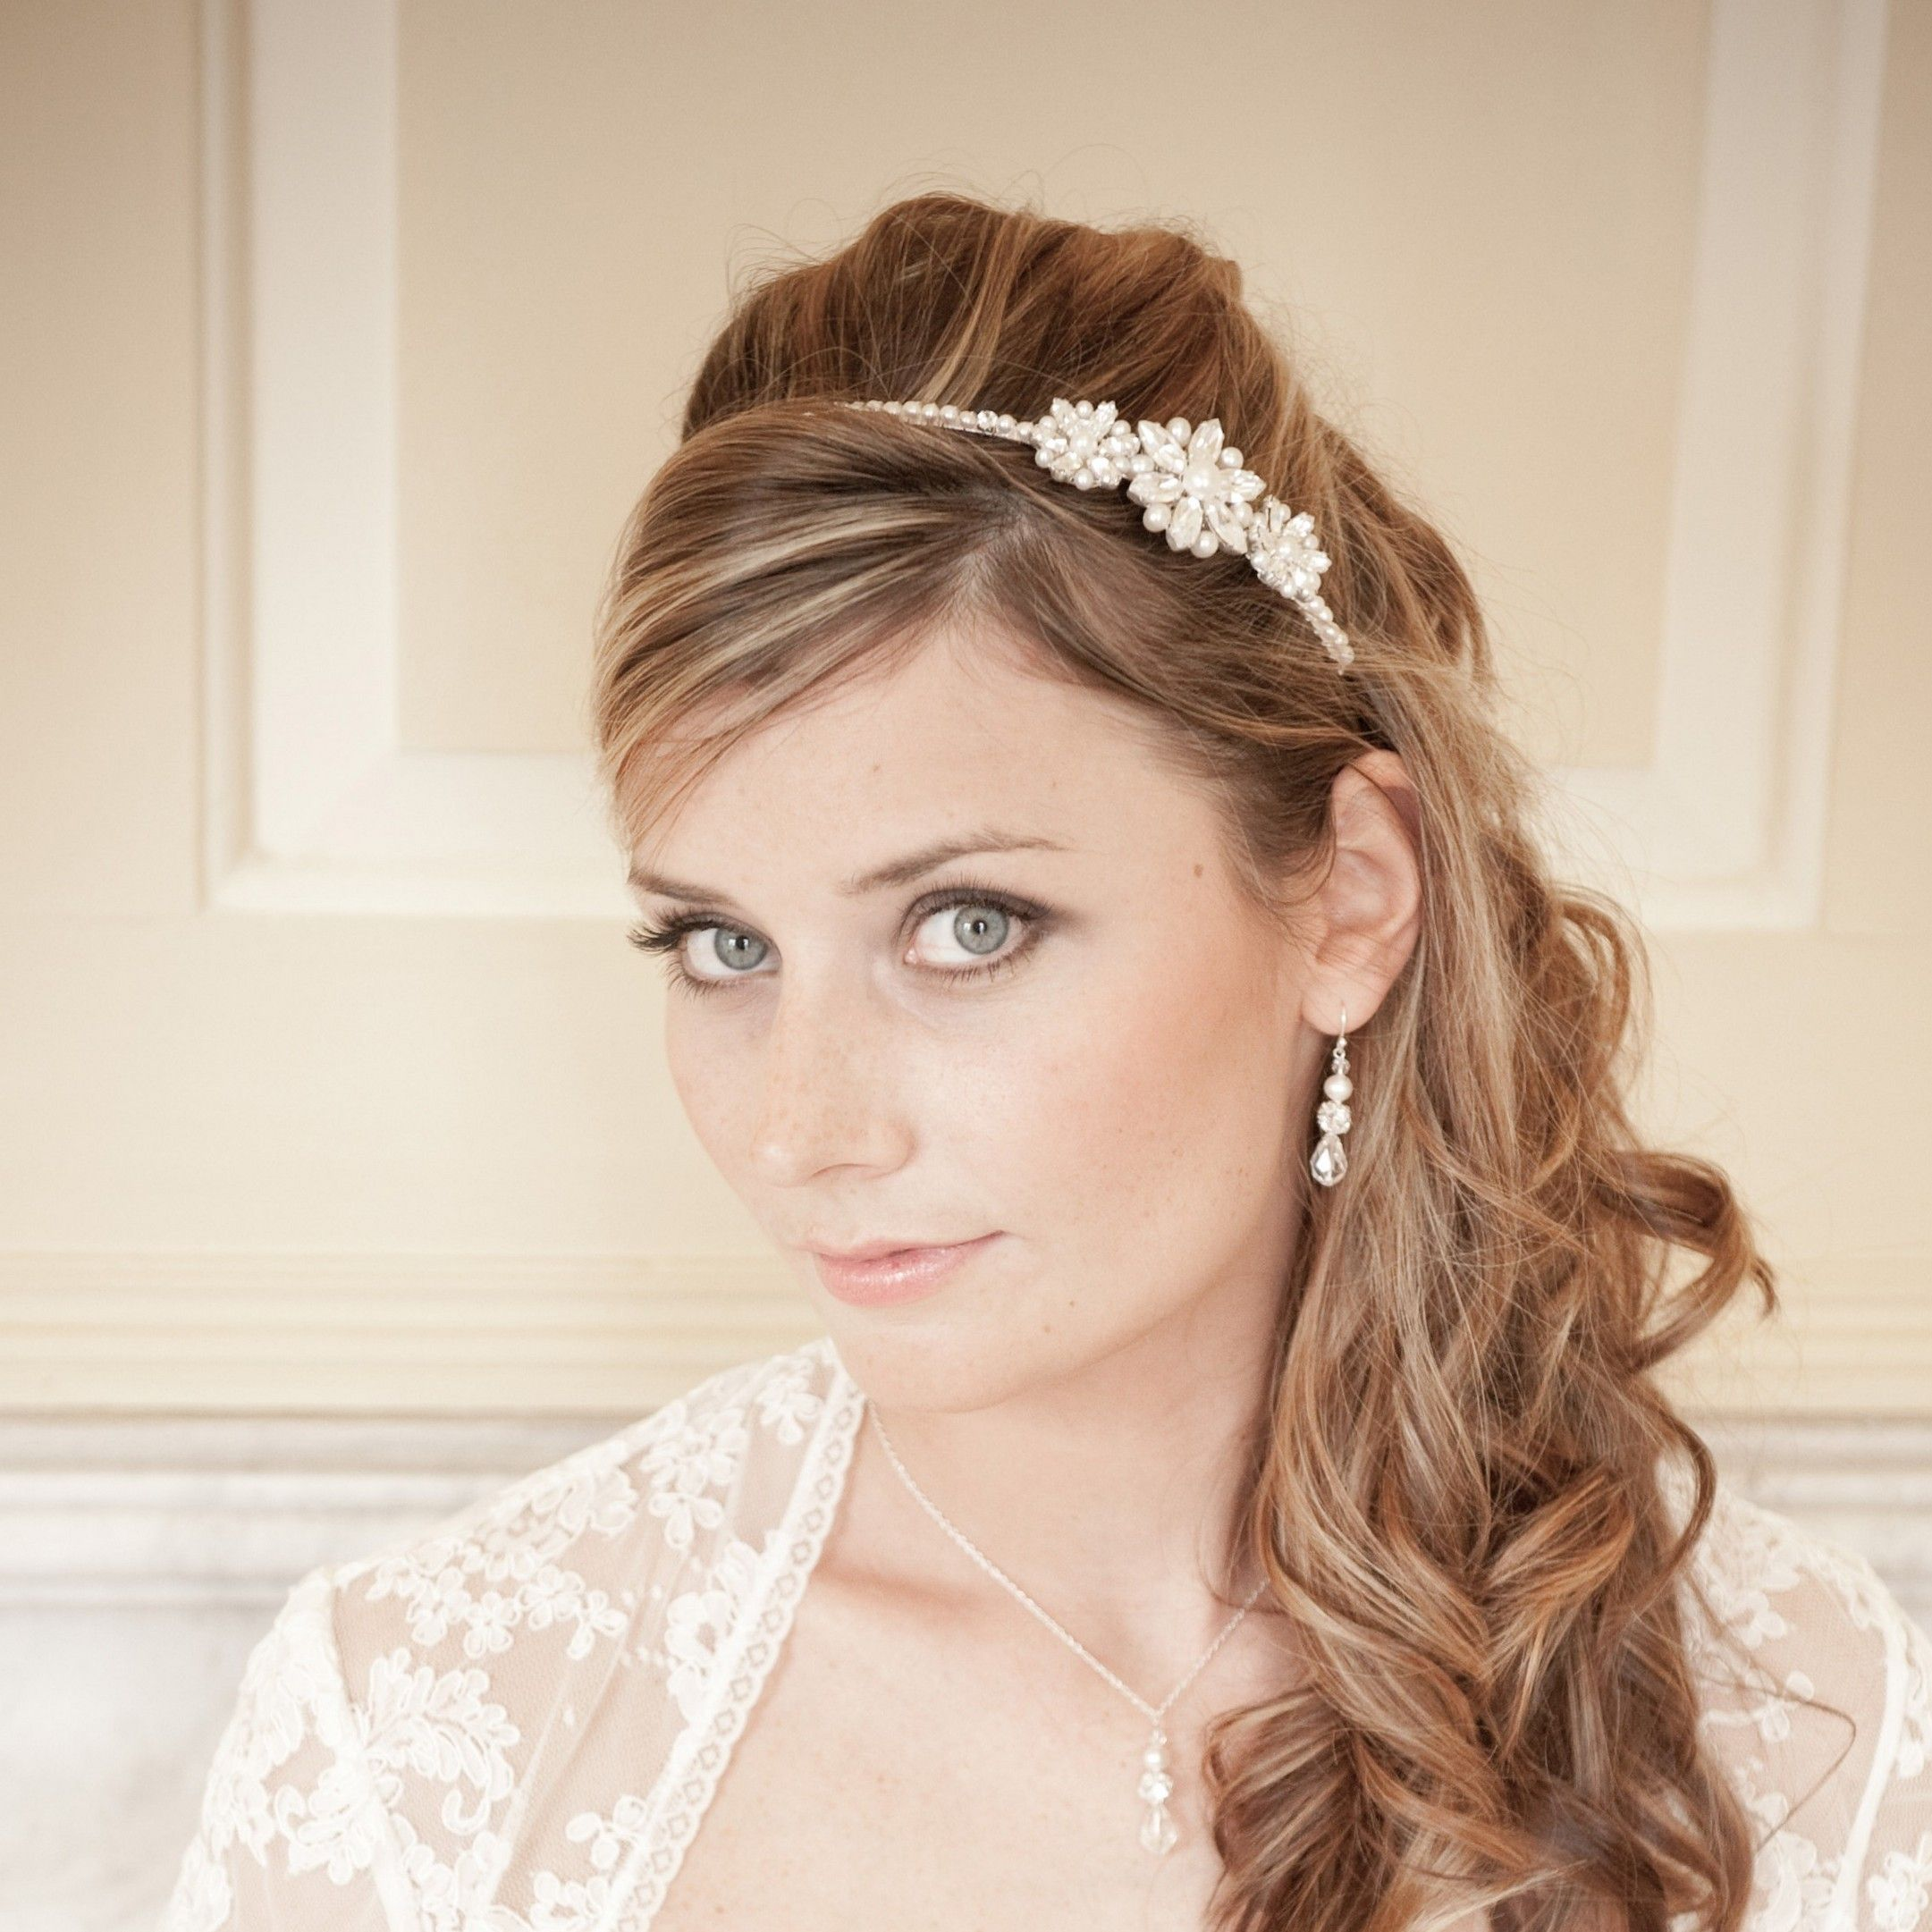 Wedding Hairstyle With Headband: Wedding Hairstyles With Headbands Updo Wedding Hairstyles